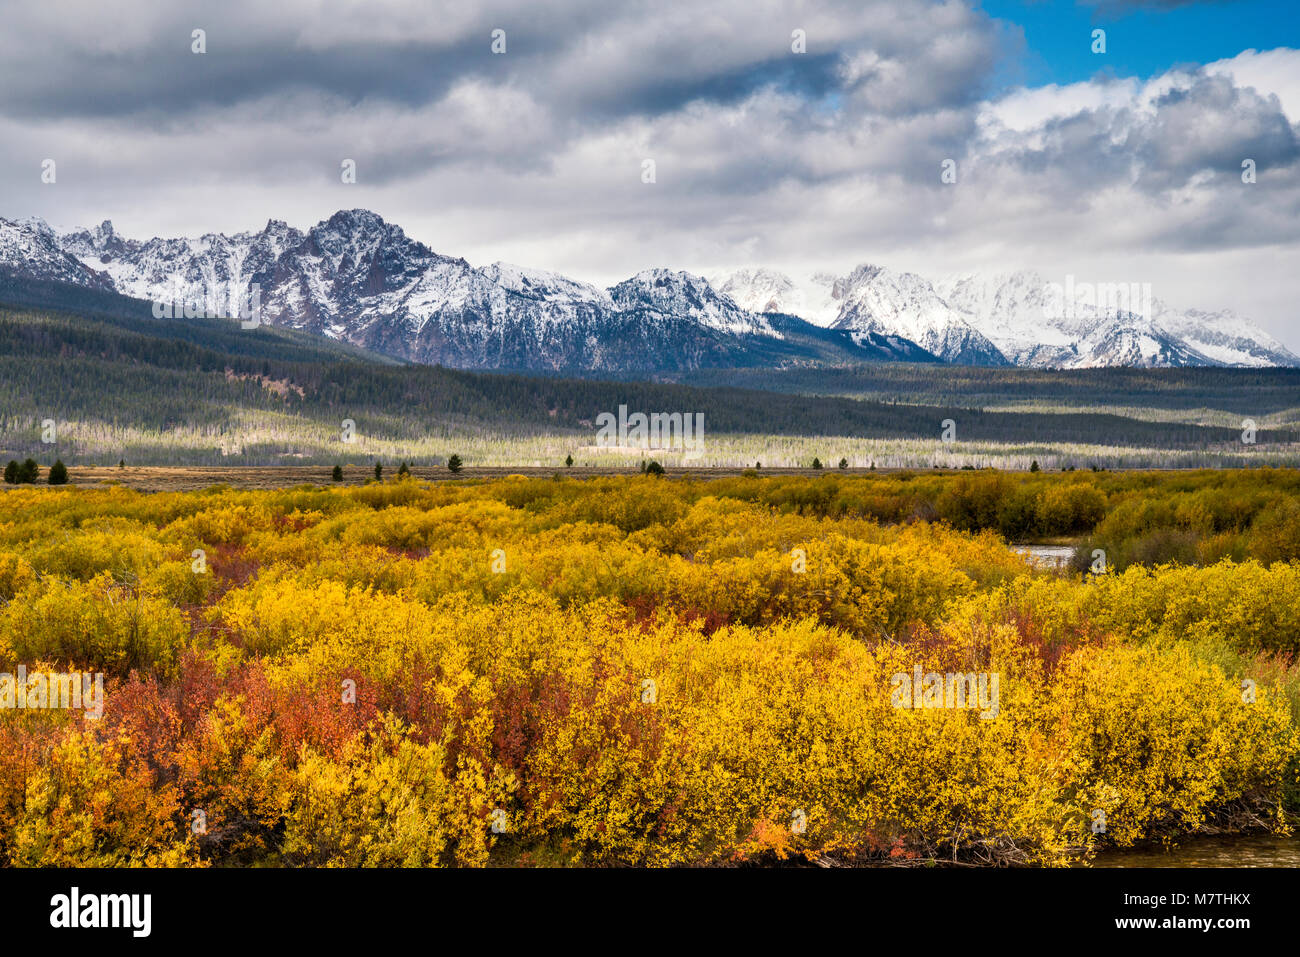 Sawtooth Mountains under snow over Sawtooth Valley in fall foliage, view from Sawtooth Scenic Byway, Sawtooth National - Stock Image